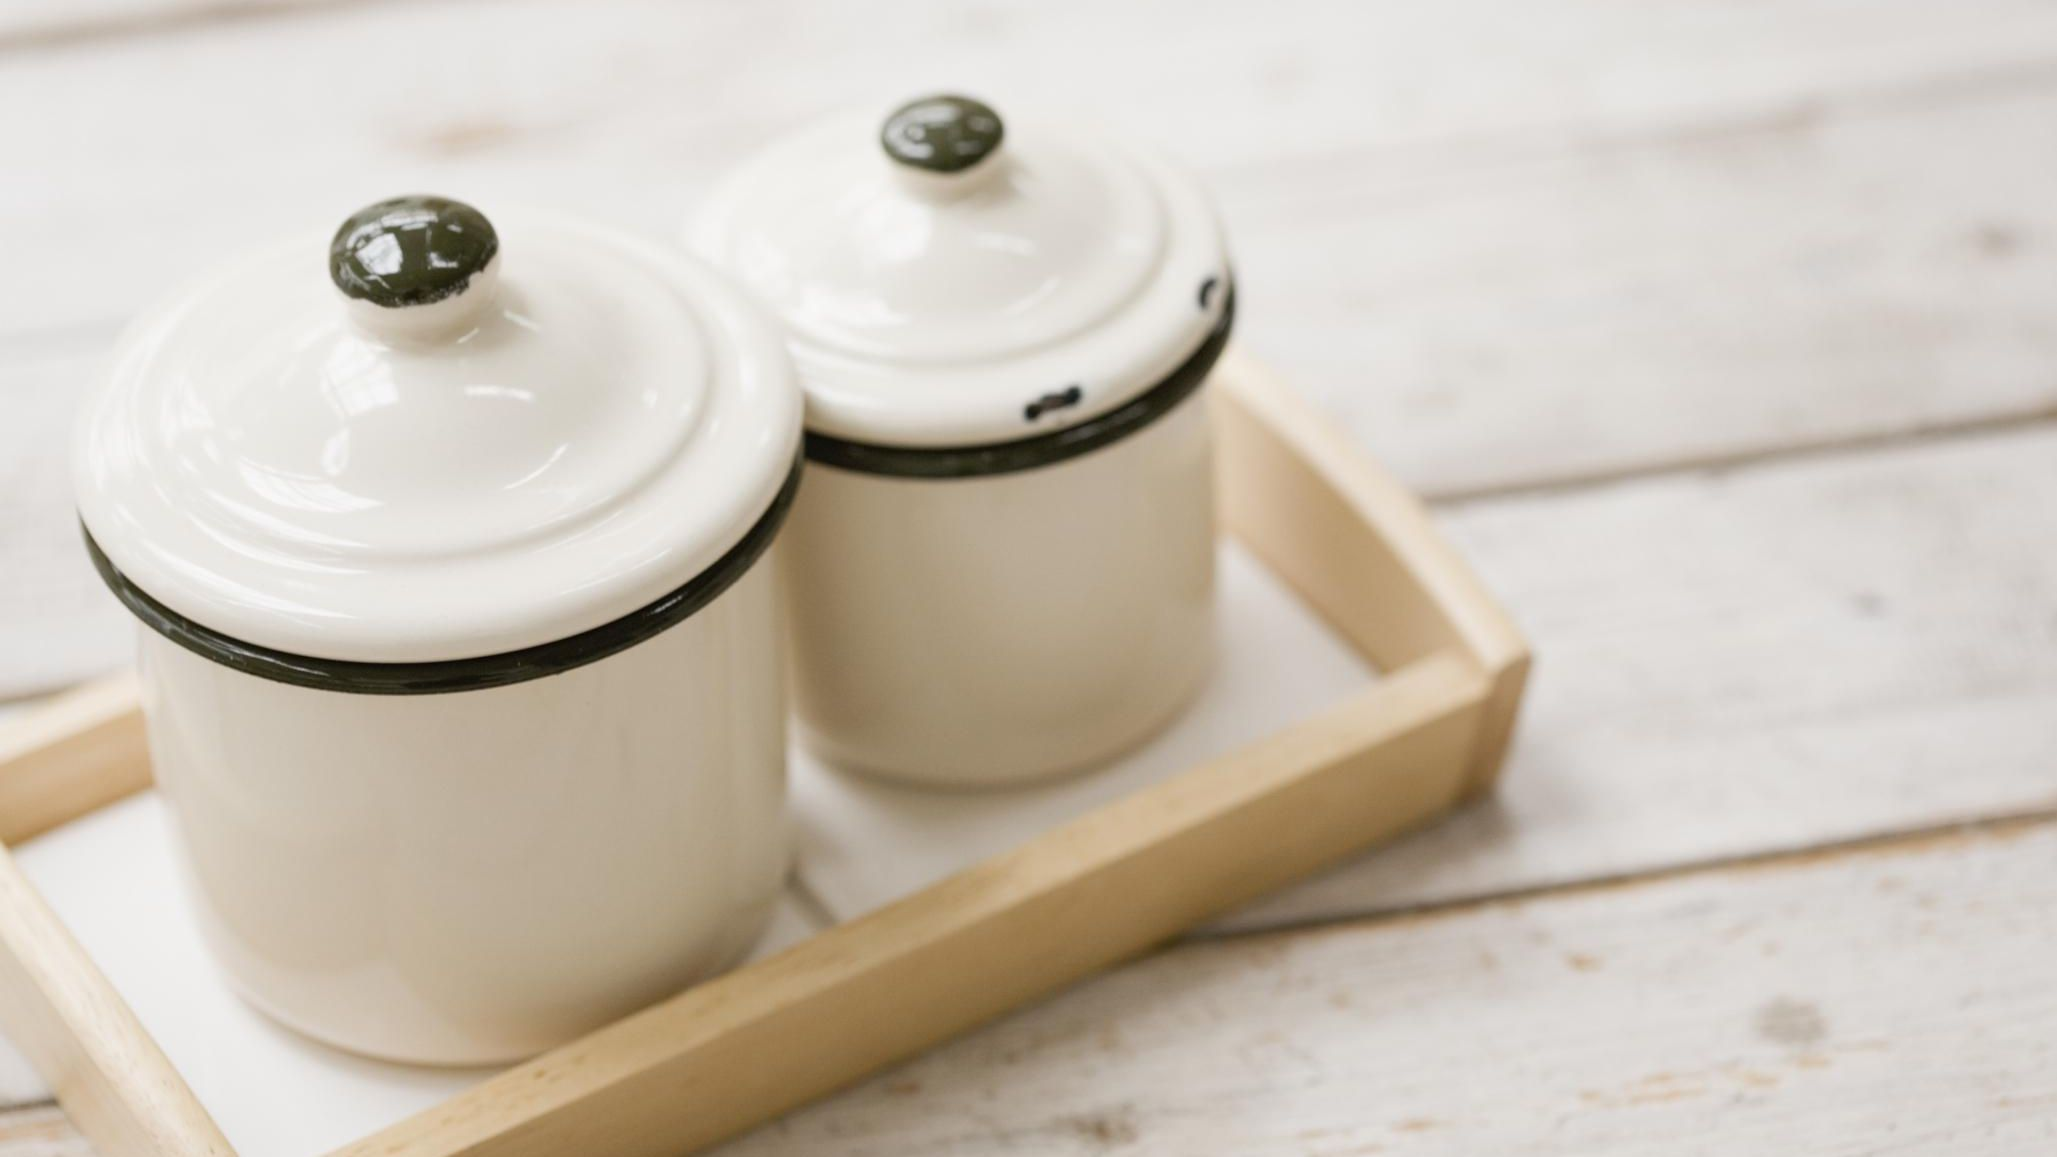 to refurbish and personalize old canisters